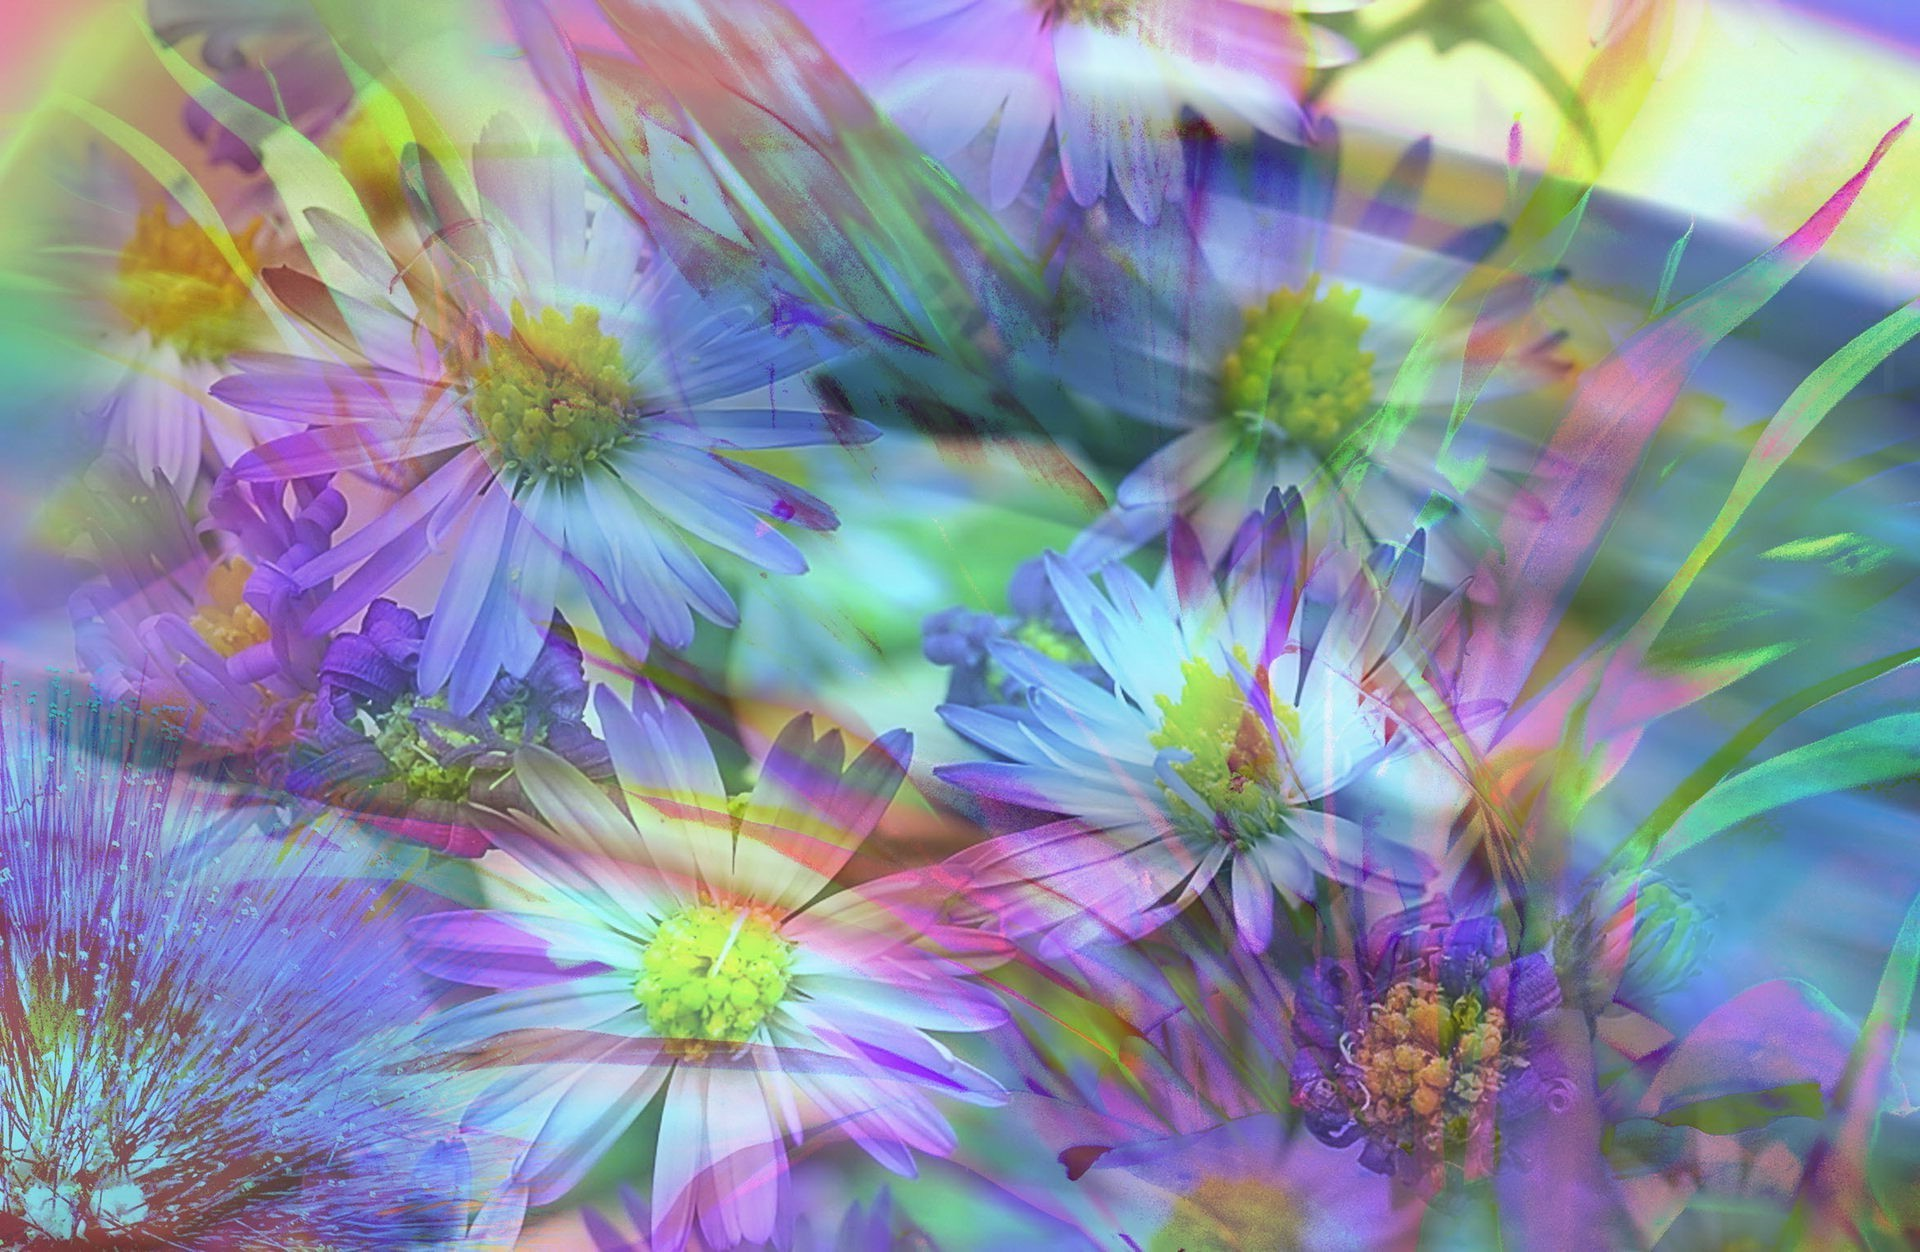 abstract and graphics flower nature flora floral color garden beautiful summer blooming petal bright bouquet vibrant leaf season decoration botanical hayfield field